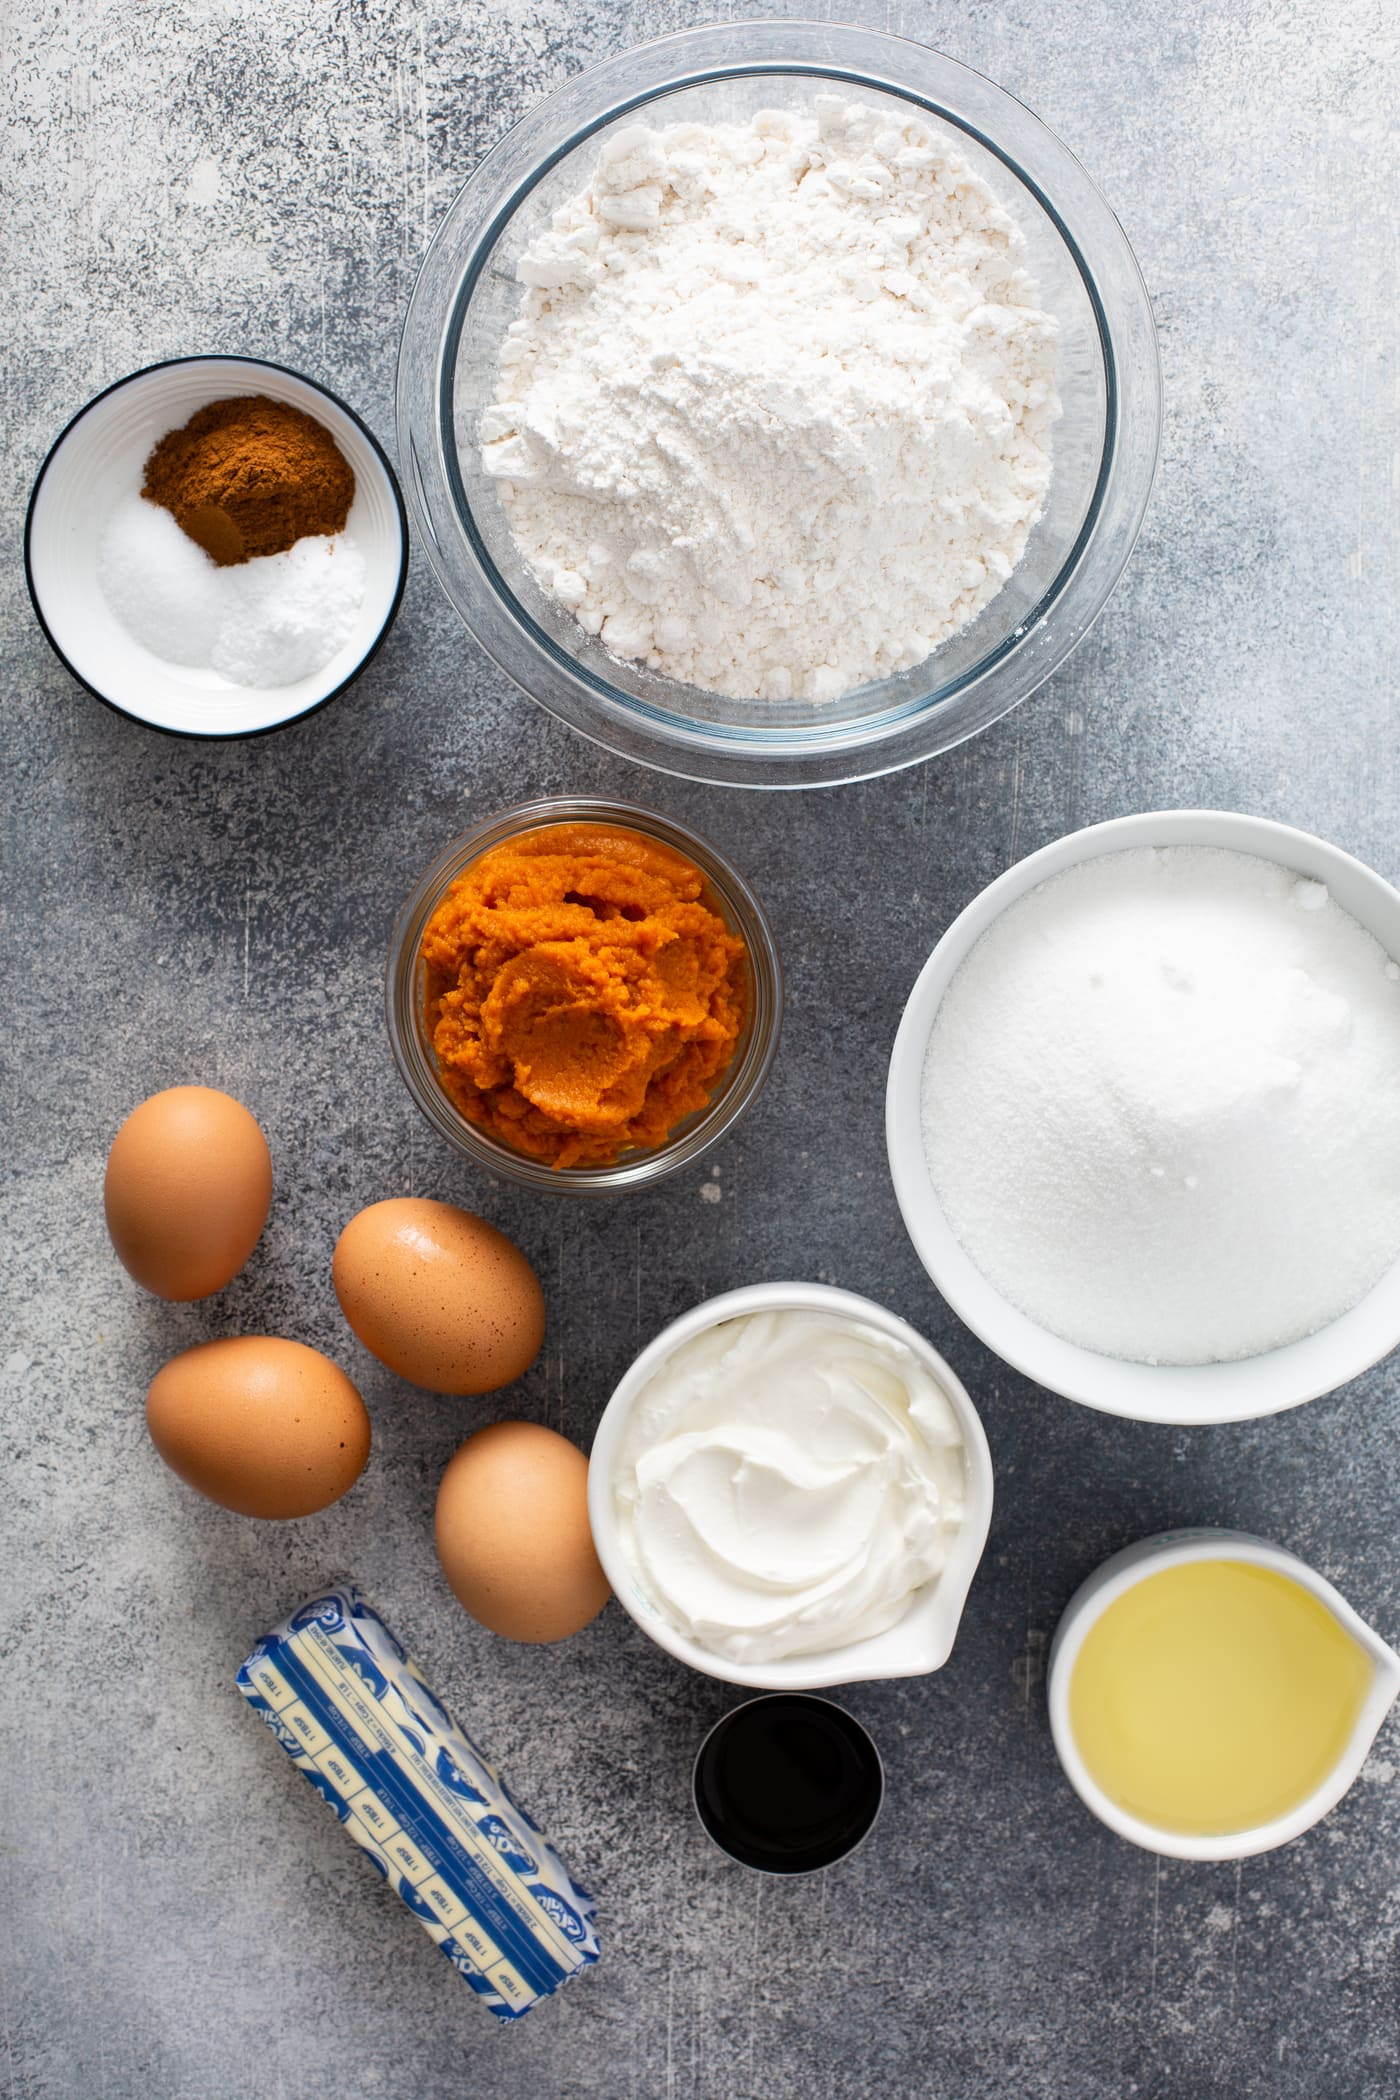 Small containers with ingredients for sour cream cinnamon swirl pumpkin bundt cake. There are containers of flour, sugar, sour cream, butter, pumpkin, and cinnamon. there are also four brown eggs on the table.